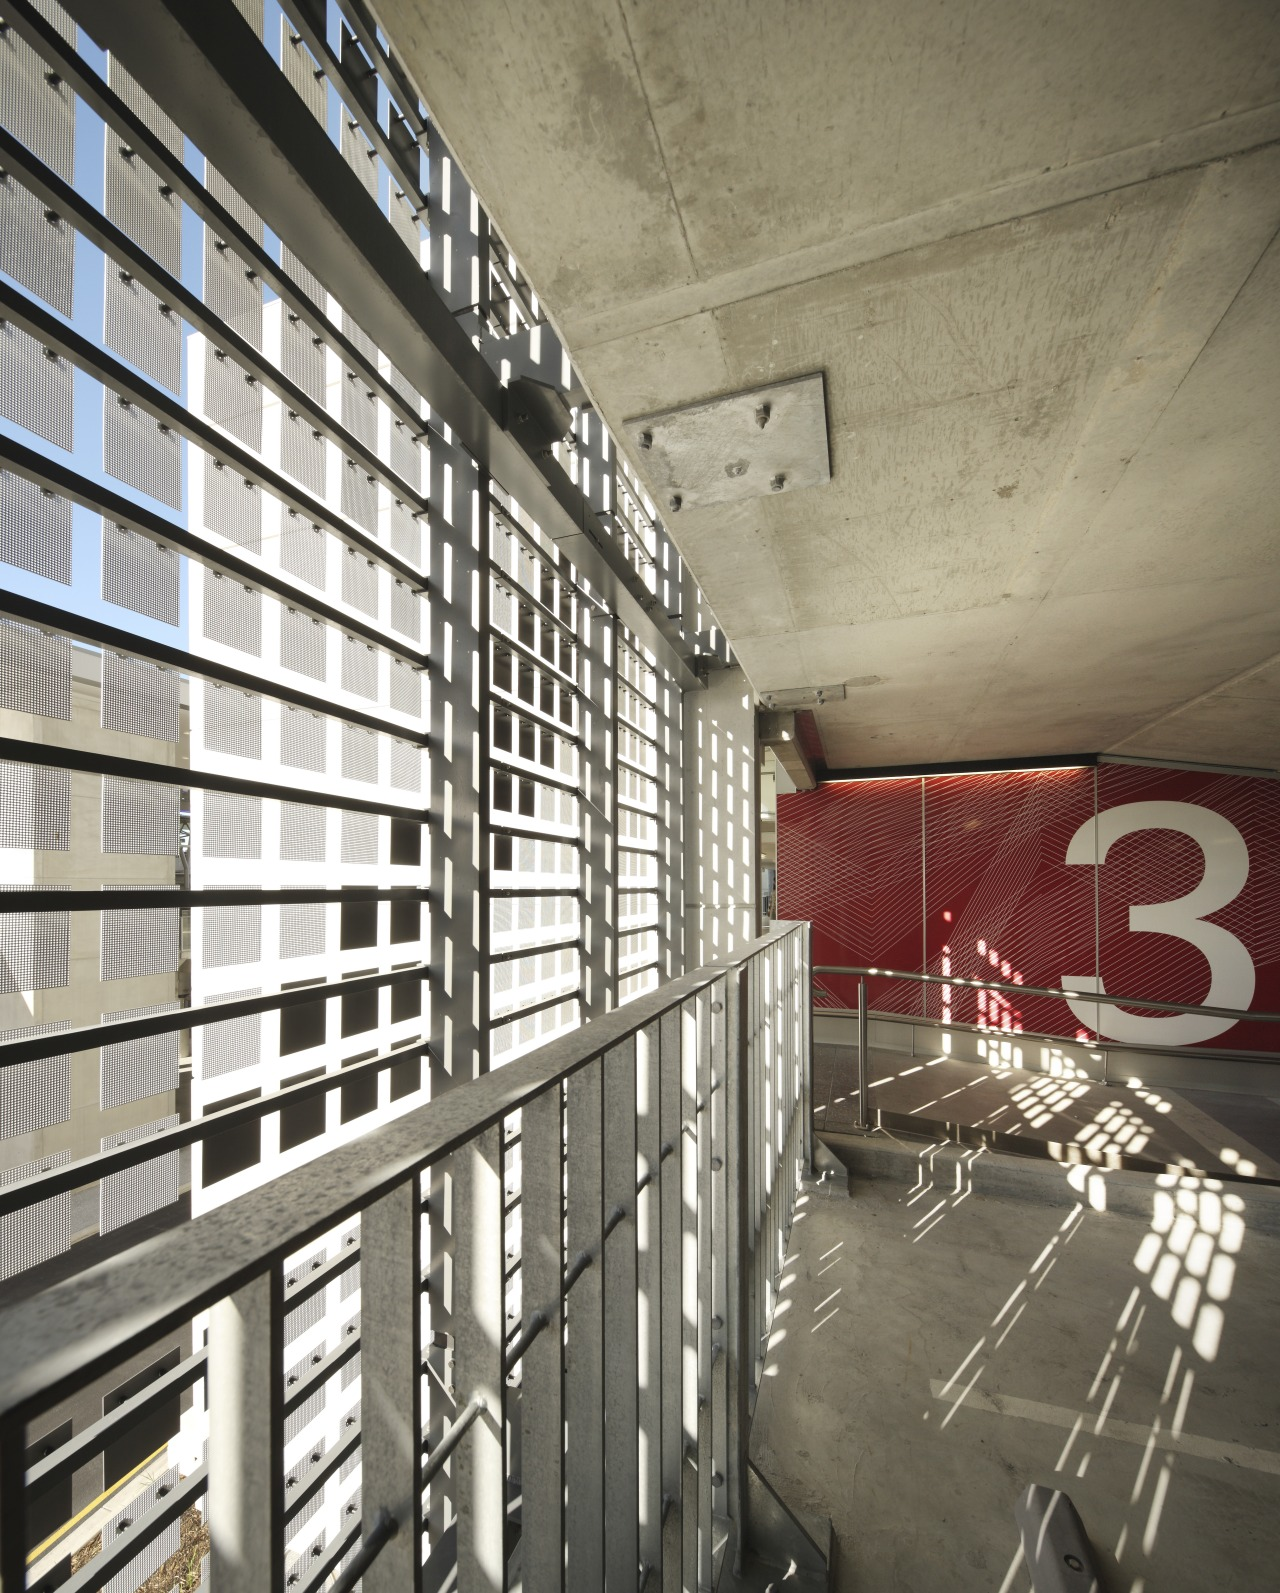 Interior with red wall and number 3. architecture, building, ceiling, daylighting, interior design, gray, white